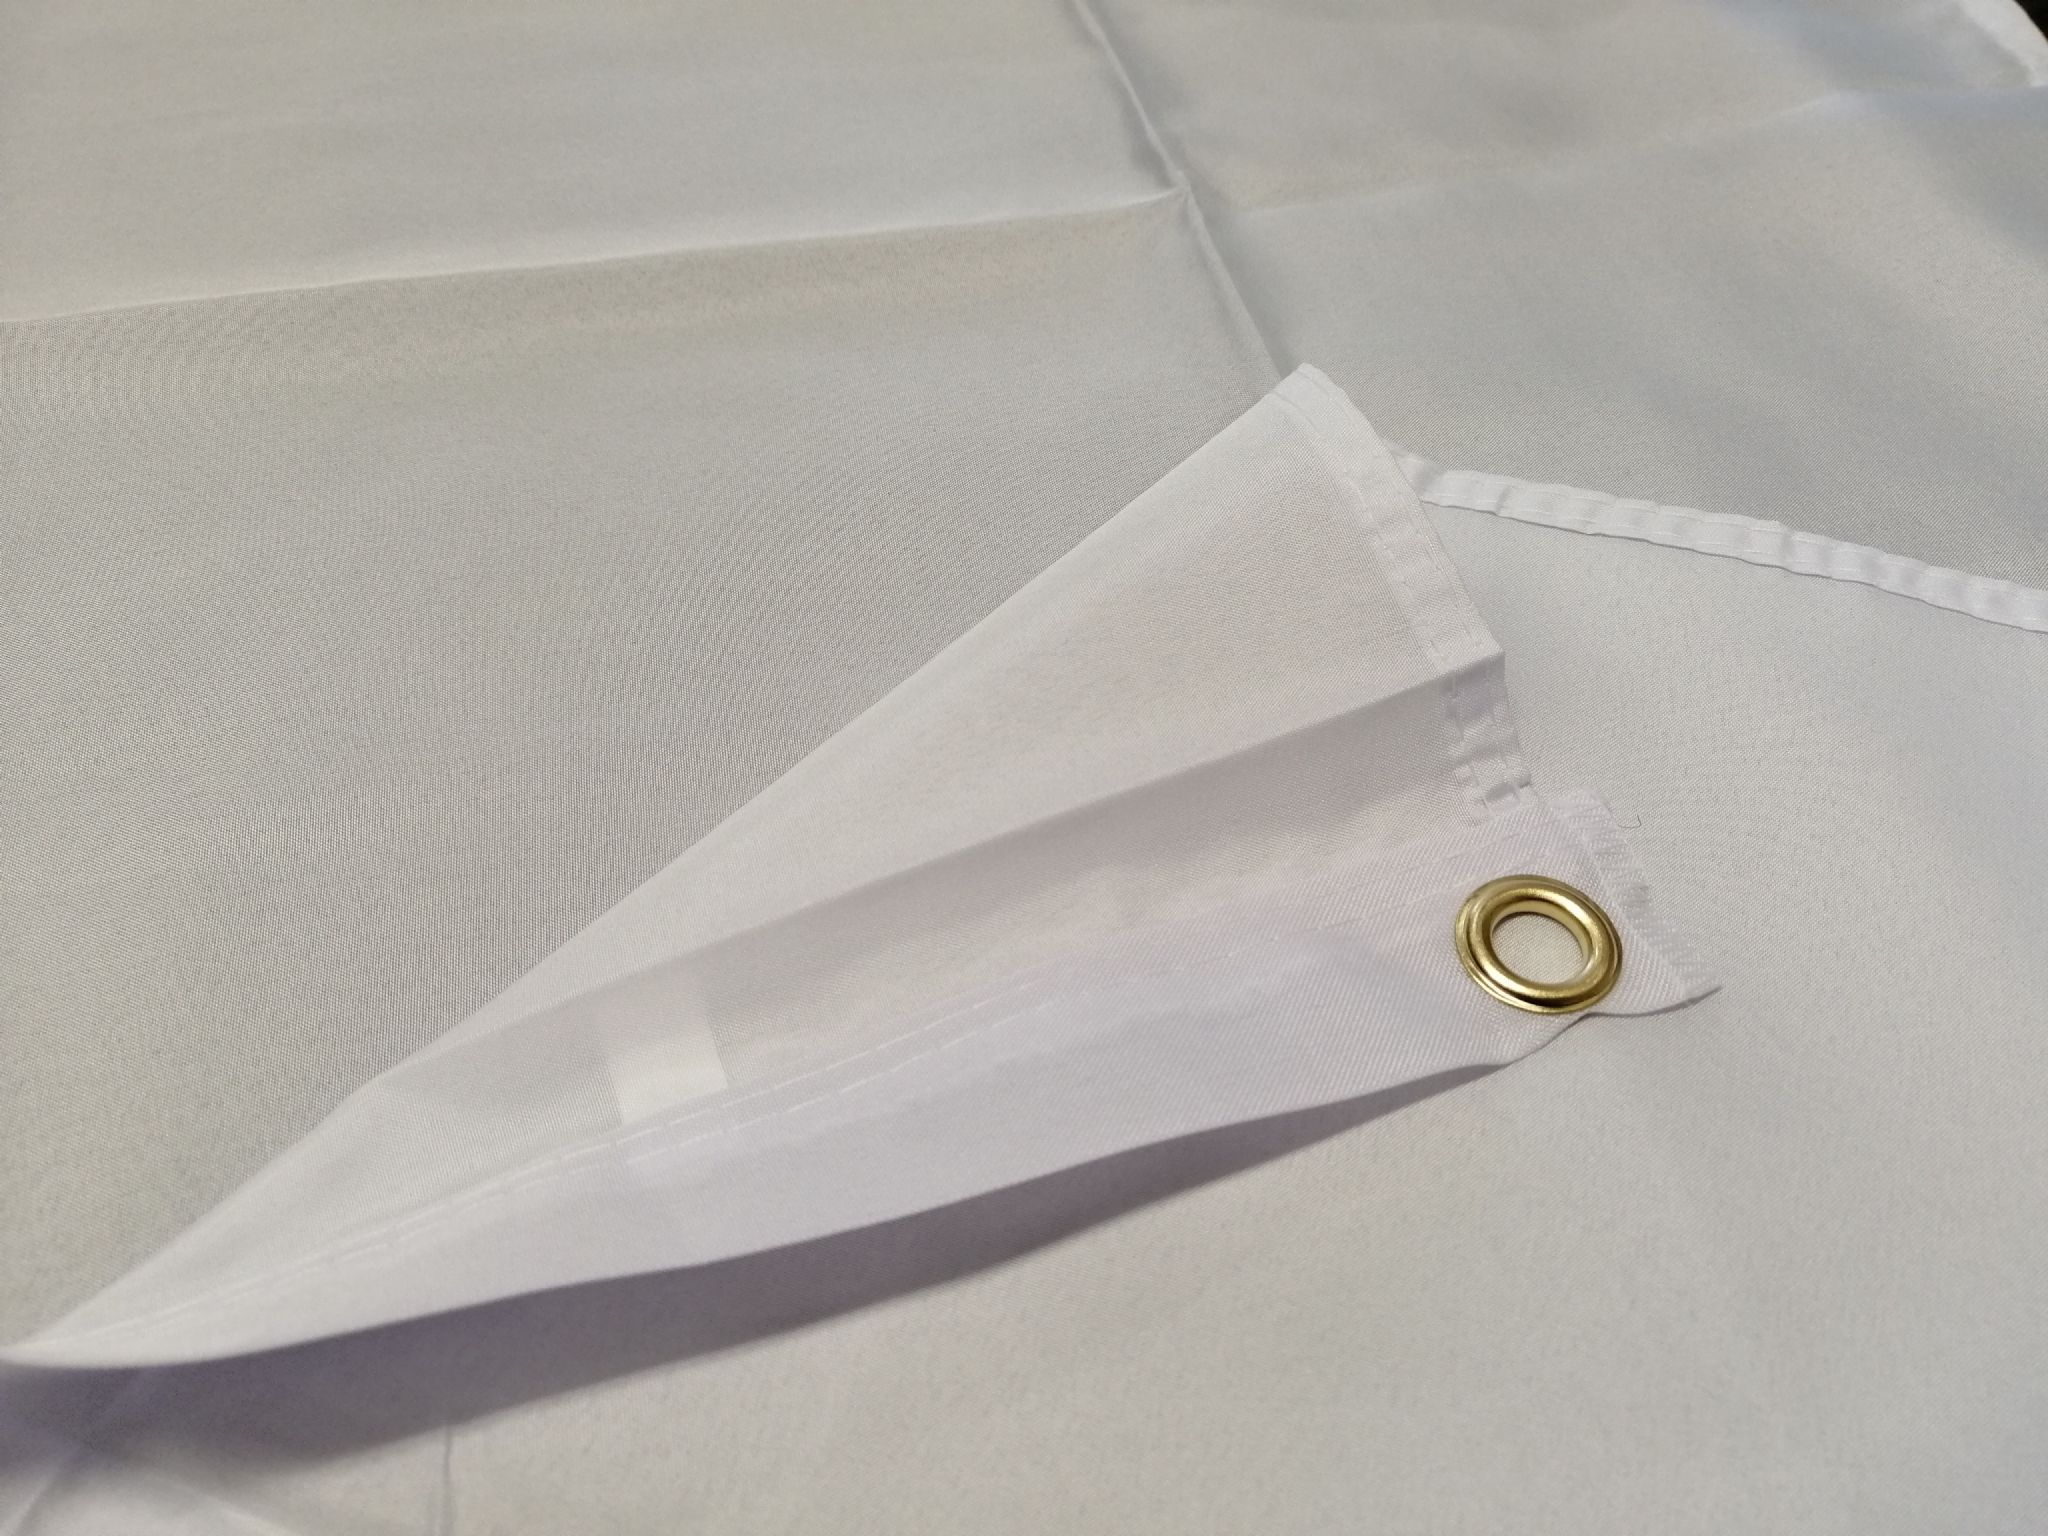 JACK /& ADMIRAL 5ft X 3ft Flag 75denier with eyelets suitable for Flagpoles